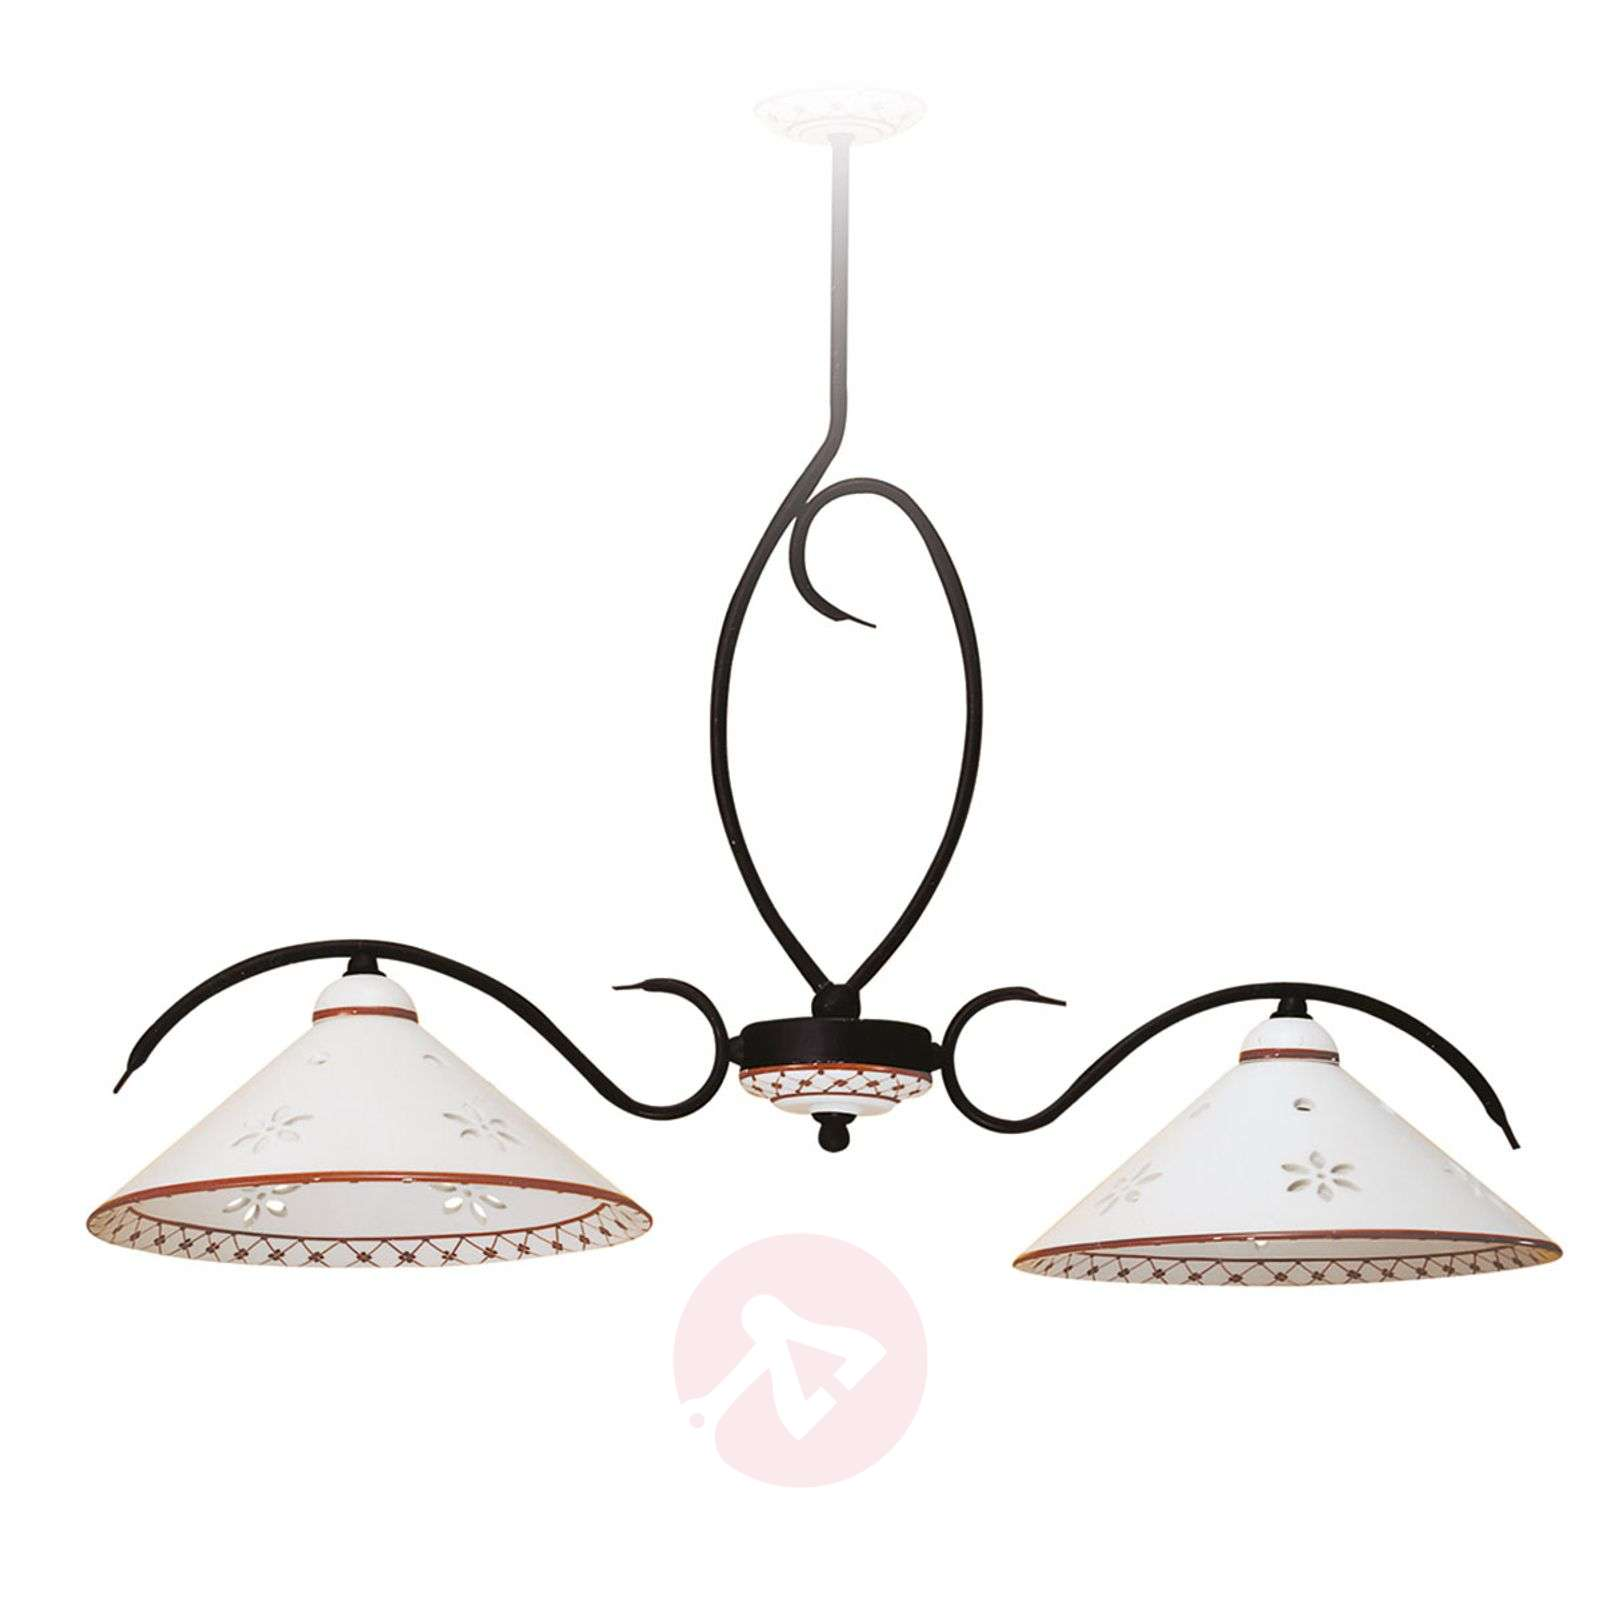 Suspension rampe Bettina à 2 lampes-3046258-01